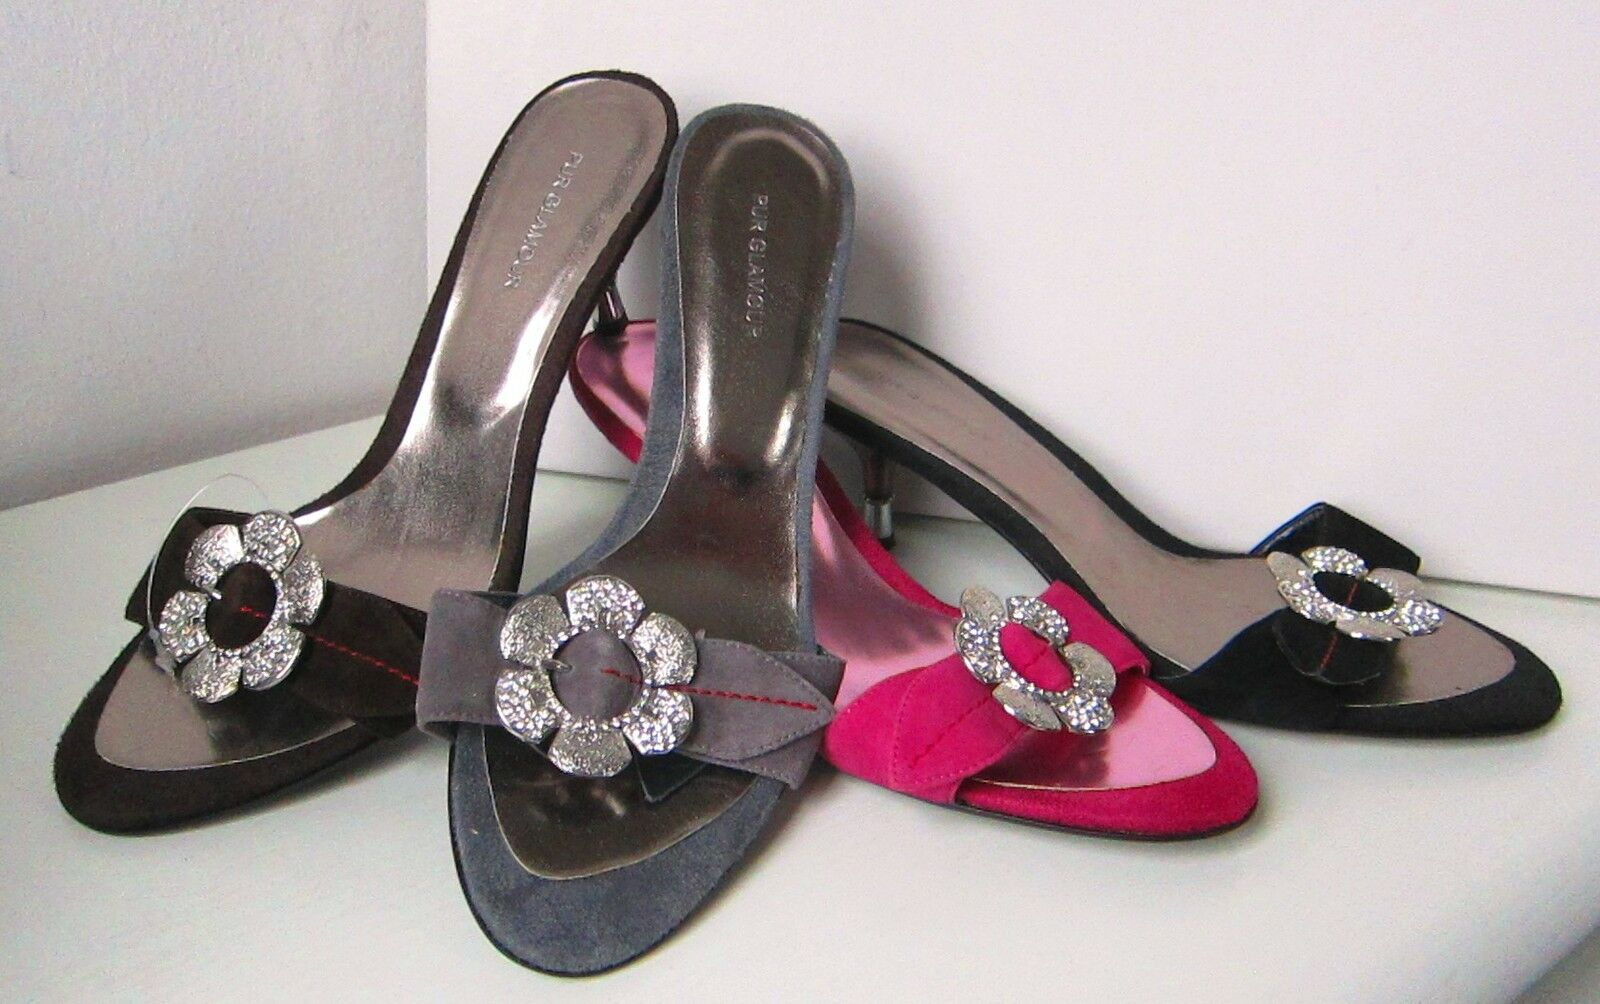 Unikat PUR GLAMOUR Mule Gr. Pumps grau hellgrau  Gr. Mule 37 Sandals shoes grey Wildleder 485aab